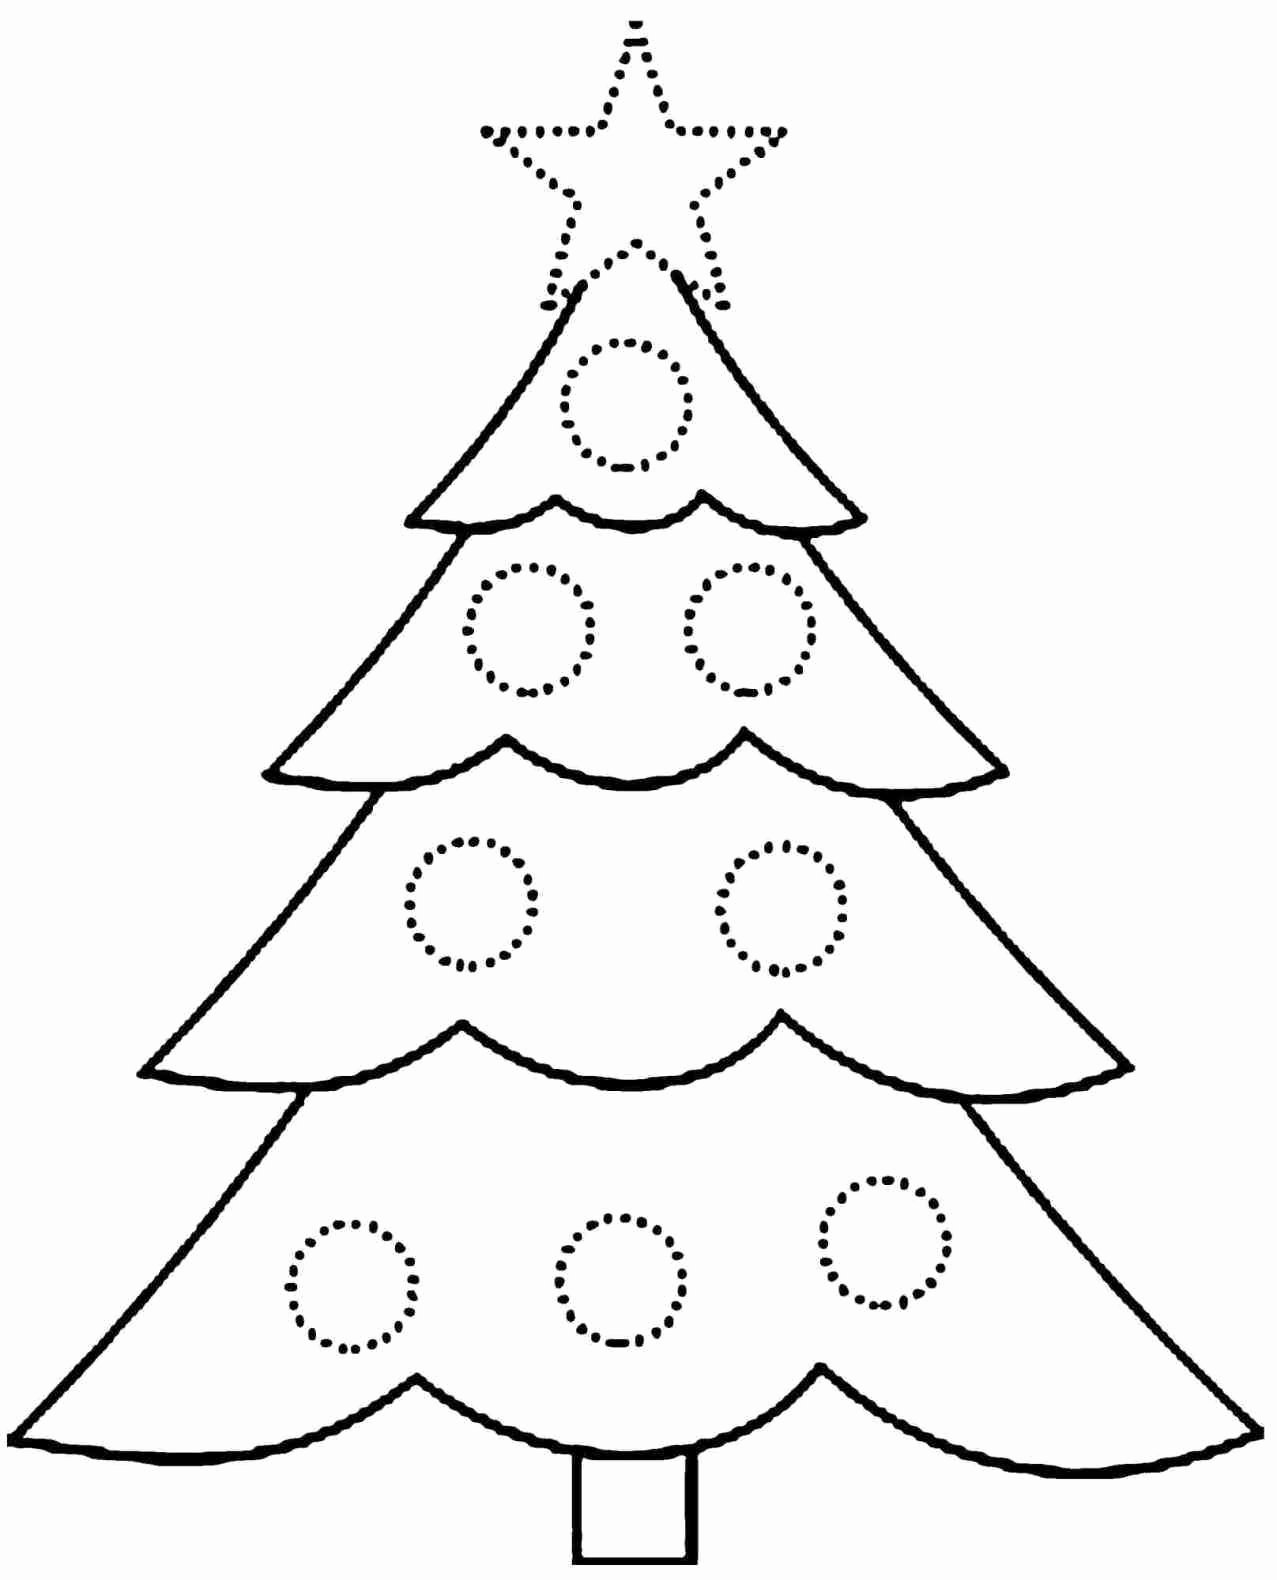 Free Printable Christmas Tree Template Inspirational Printable Tree Template Coloring Home